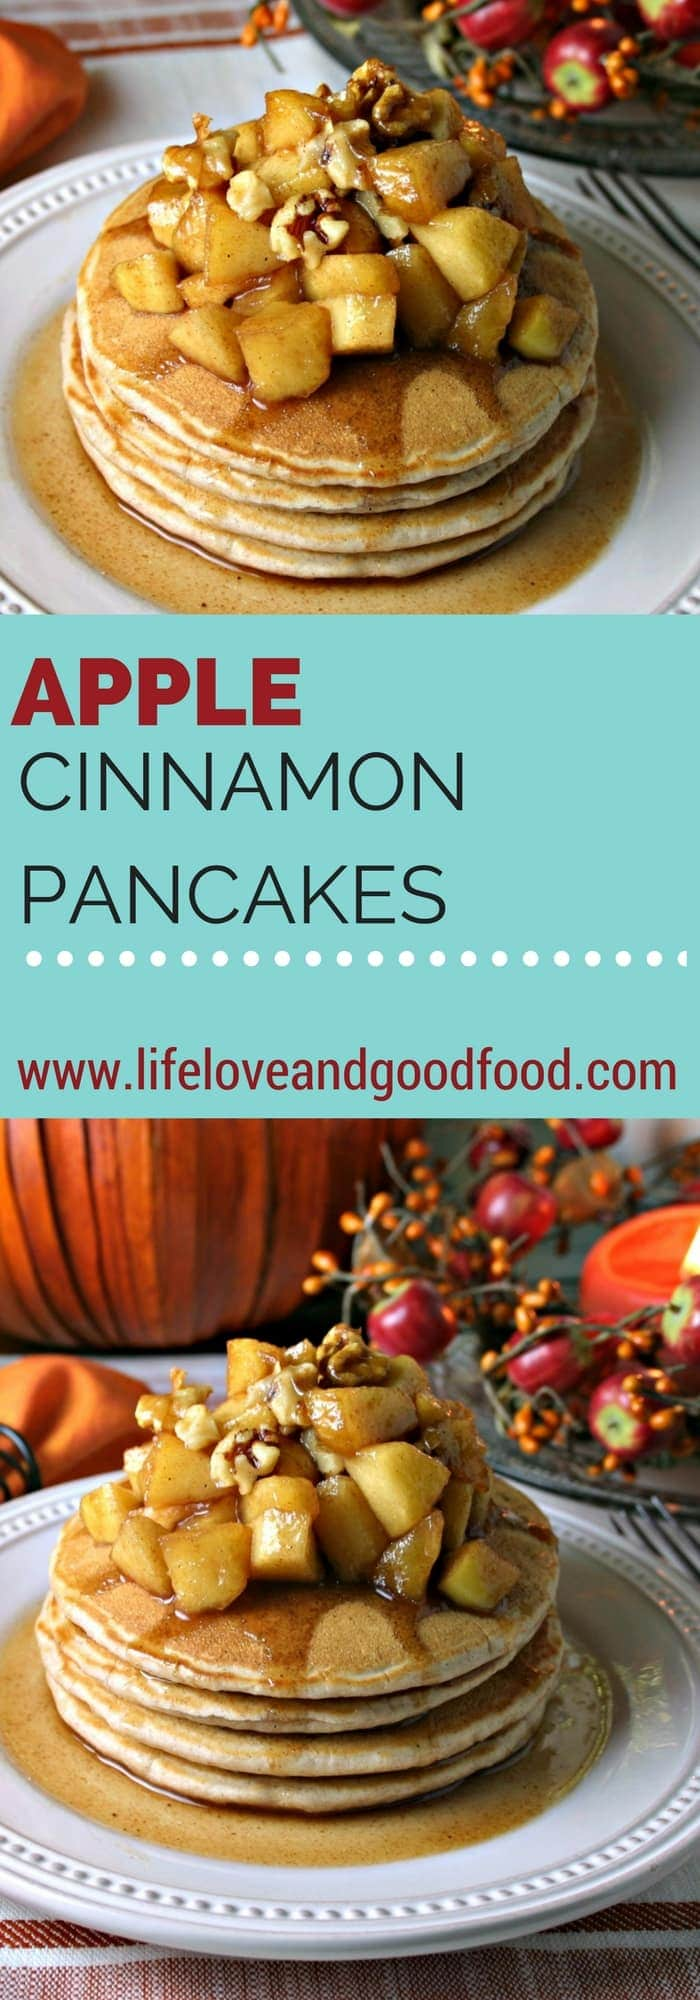 Apple Cinnamon Pancakes | lifeloveandgoodfood.com